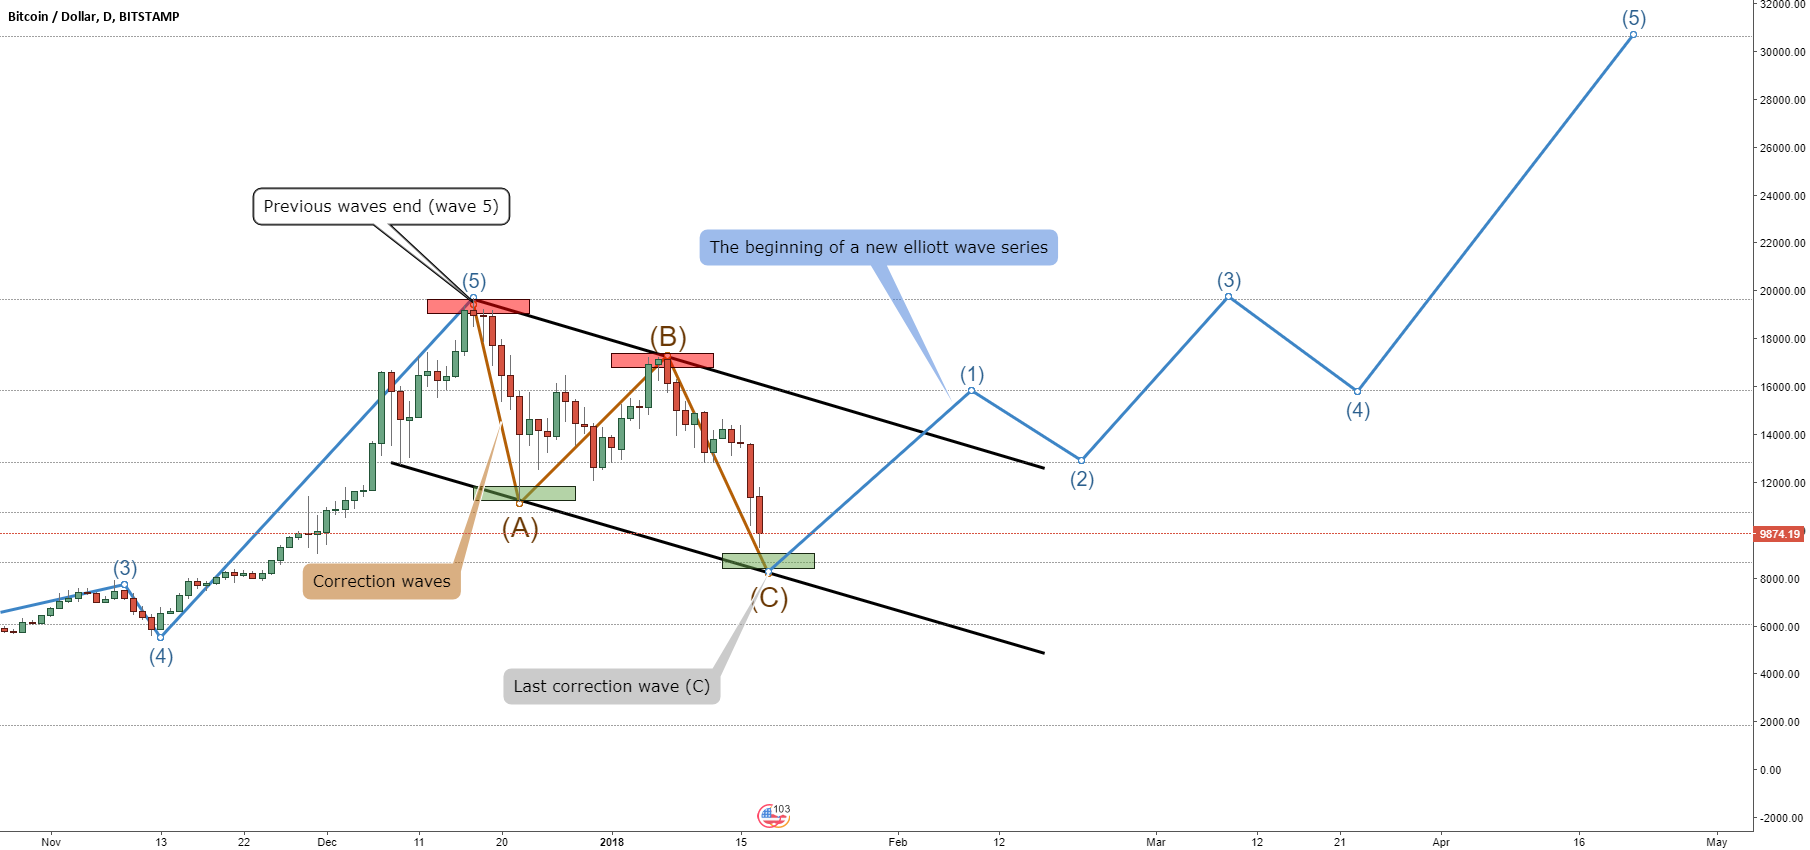 Bitcoin - By The Waves (Last correction wave - C)